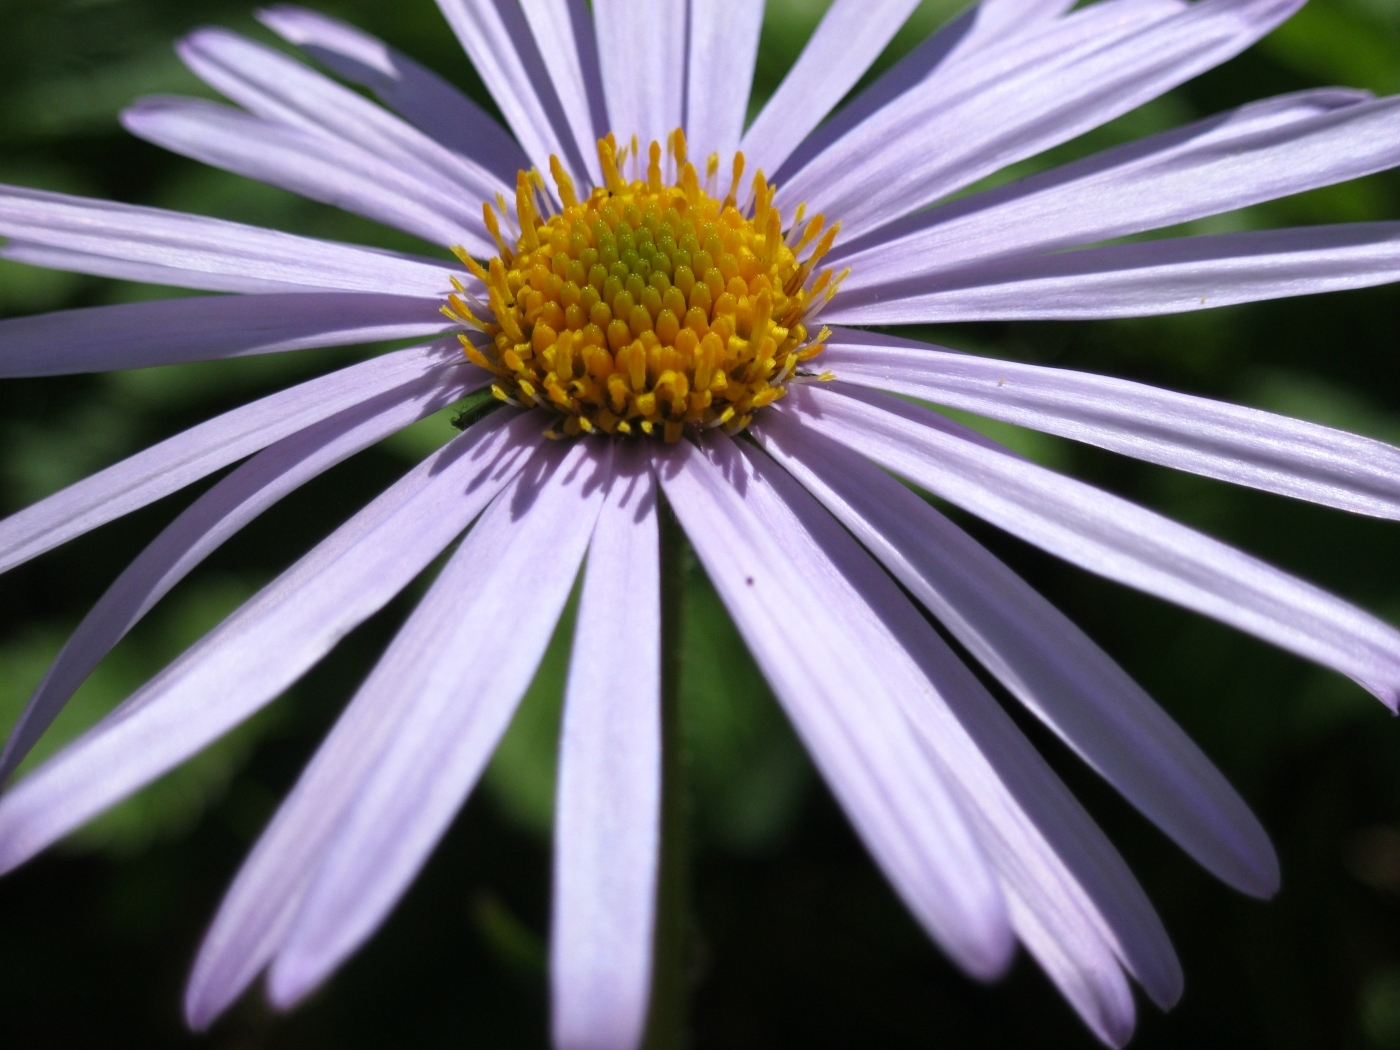 46163 download wallpaper Plants, Flowers, Camomile screensavers and pictures for free